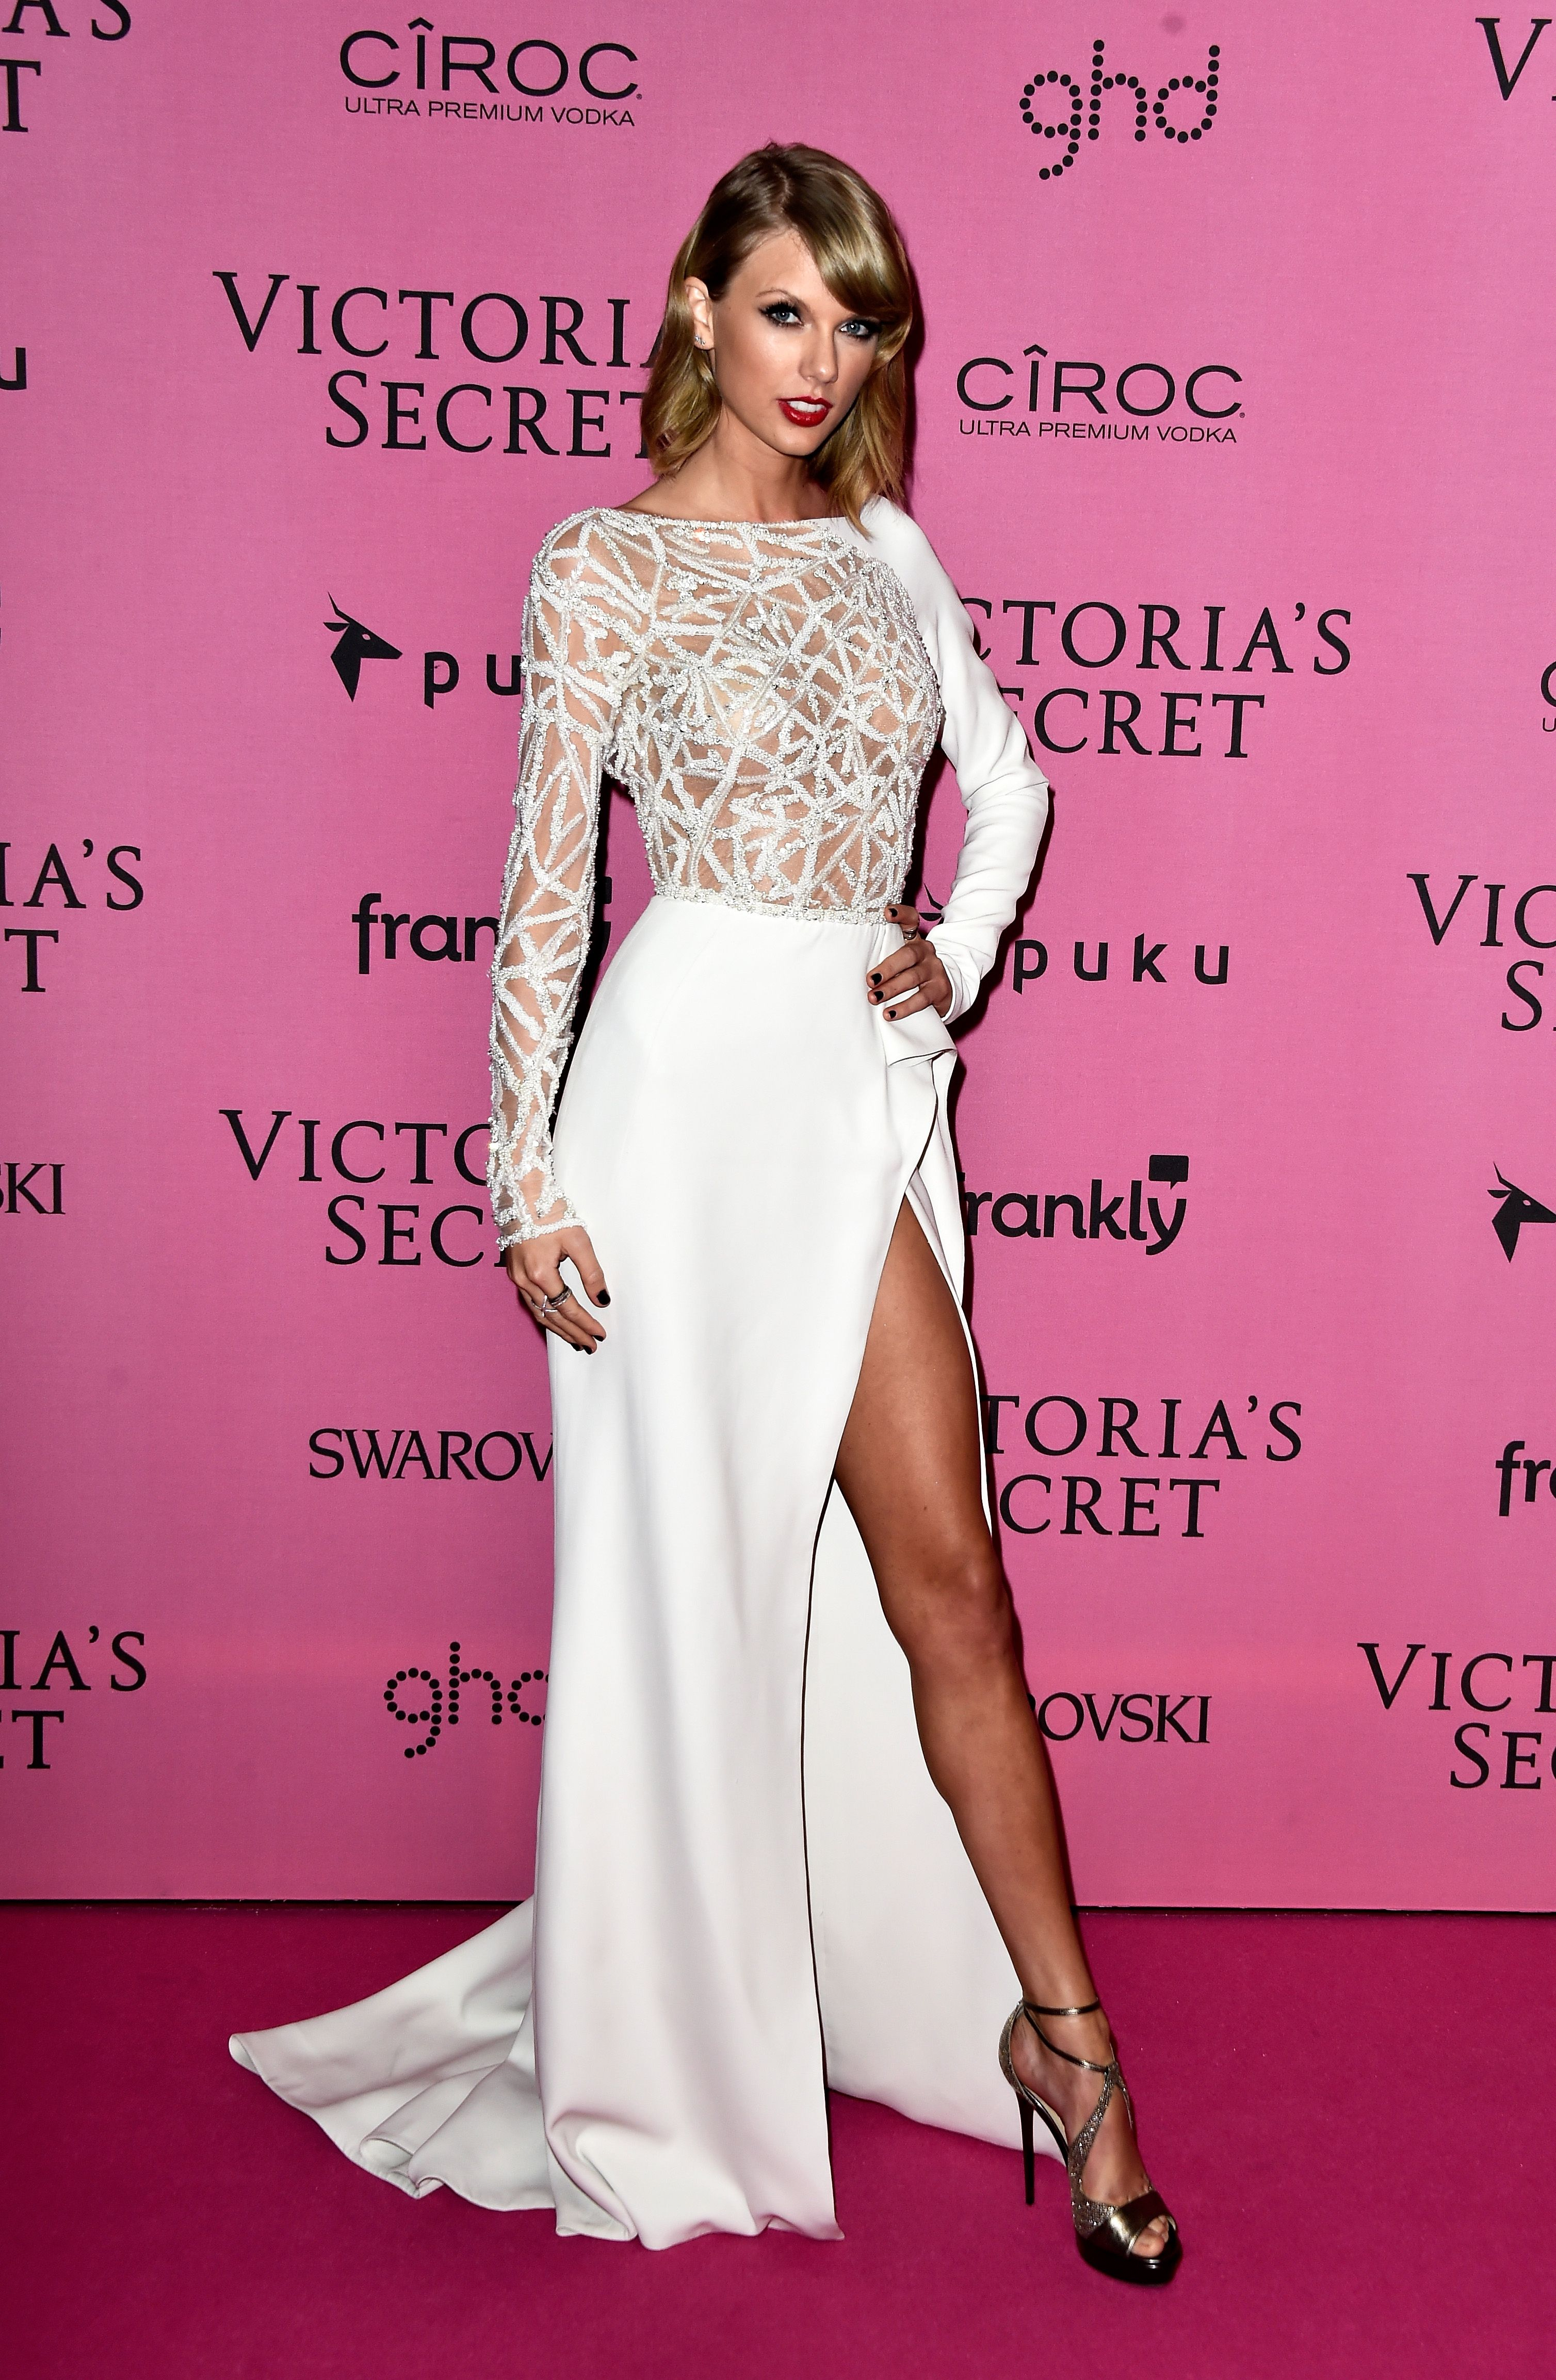 3b00657e12e Taylor poses for pictures on the pink carpet at the 2014 Victoria s Secret  Fashion Show at Earl s Court Exhibition Centre in London on Dec. 2